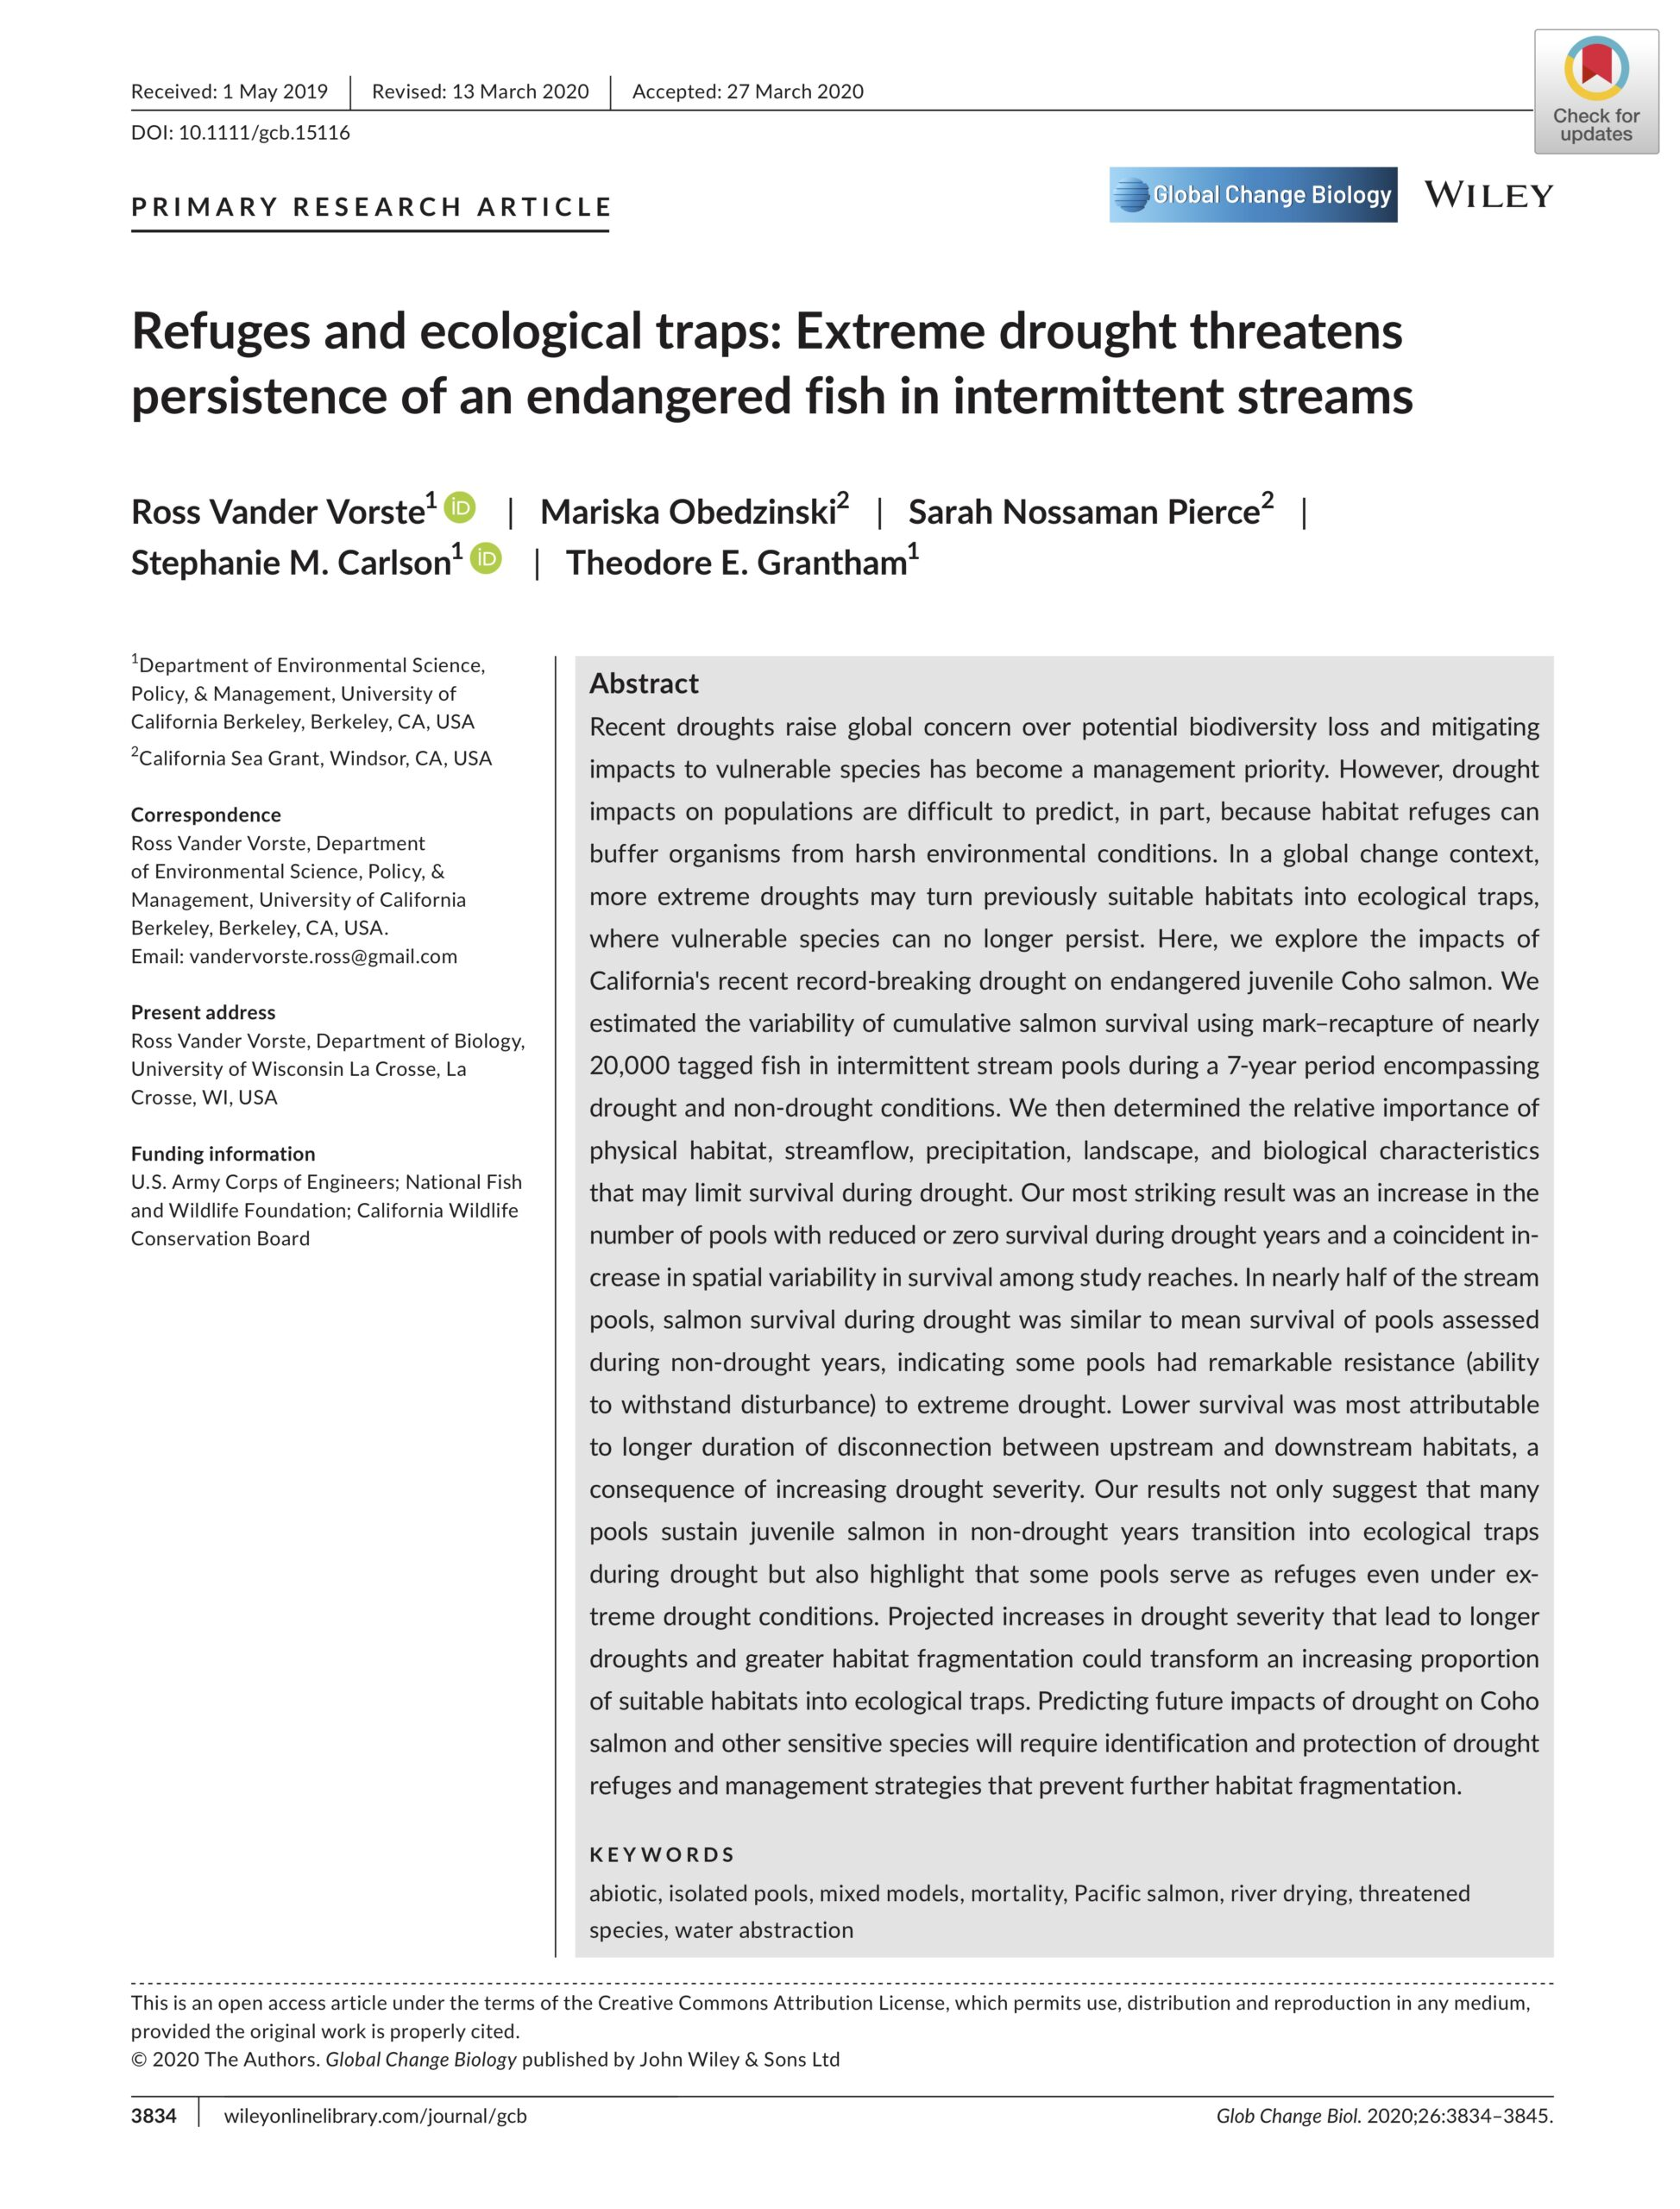 Vander Vorste et al. 2020: Refuges and ecological traps: extreme drought threatens persistence of an endangered fish in intermittent streams